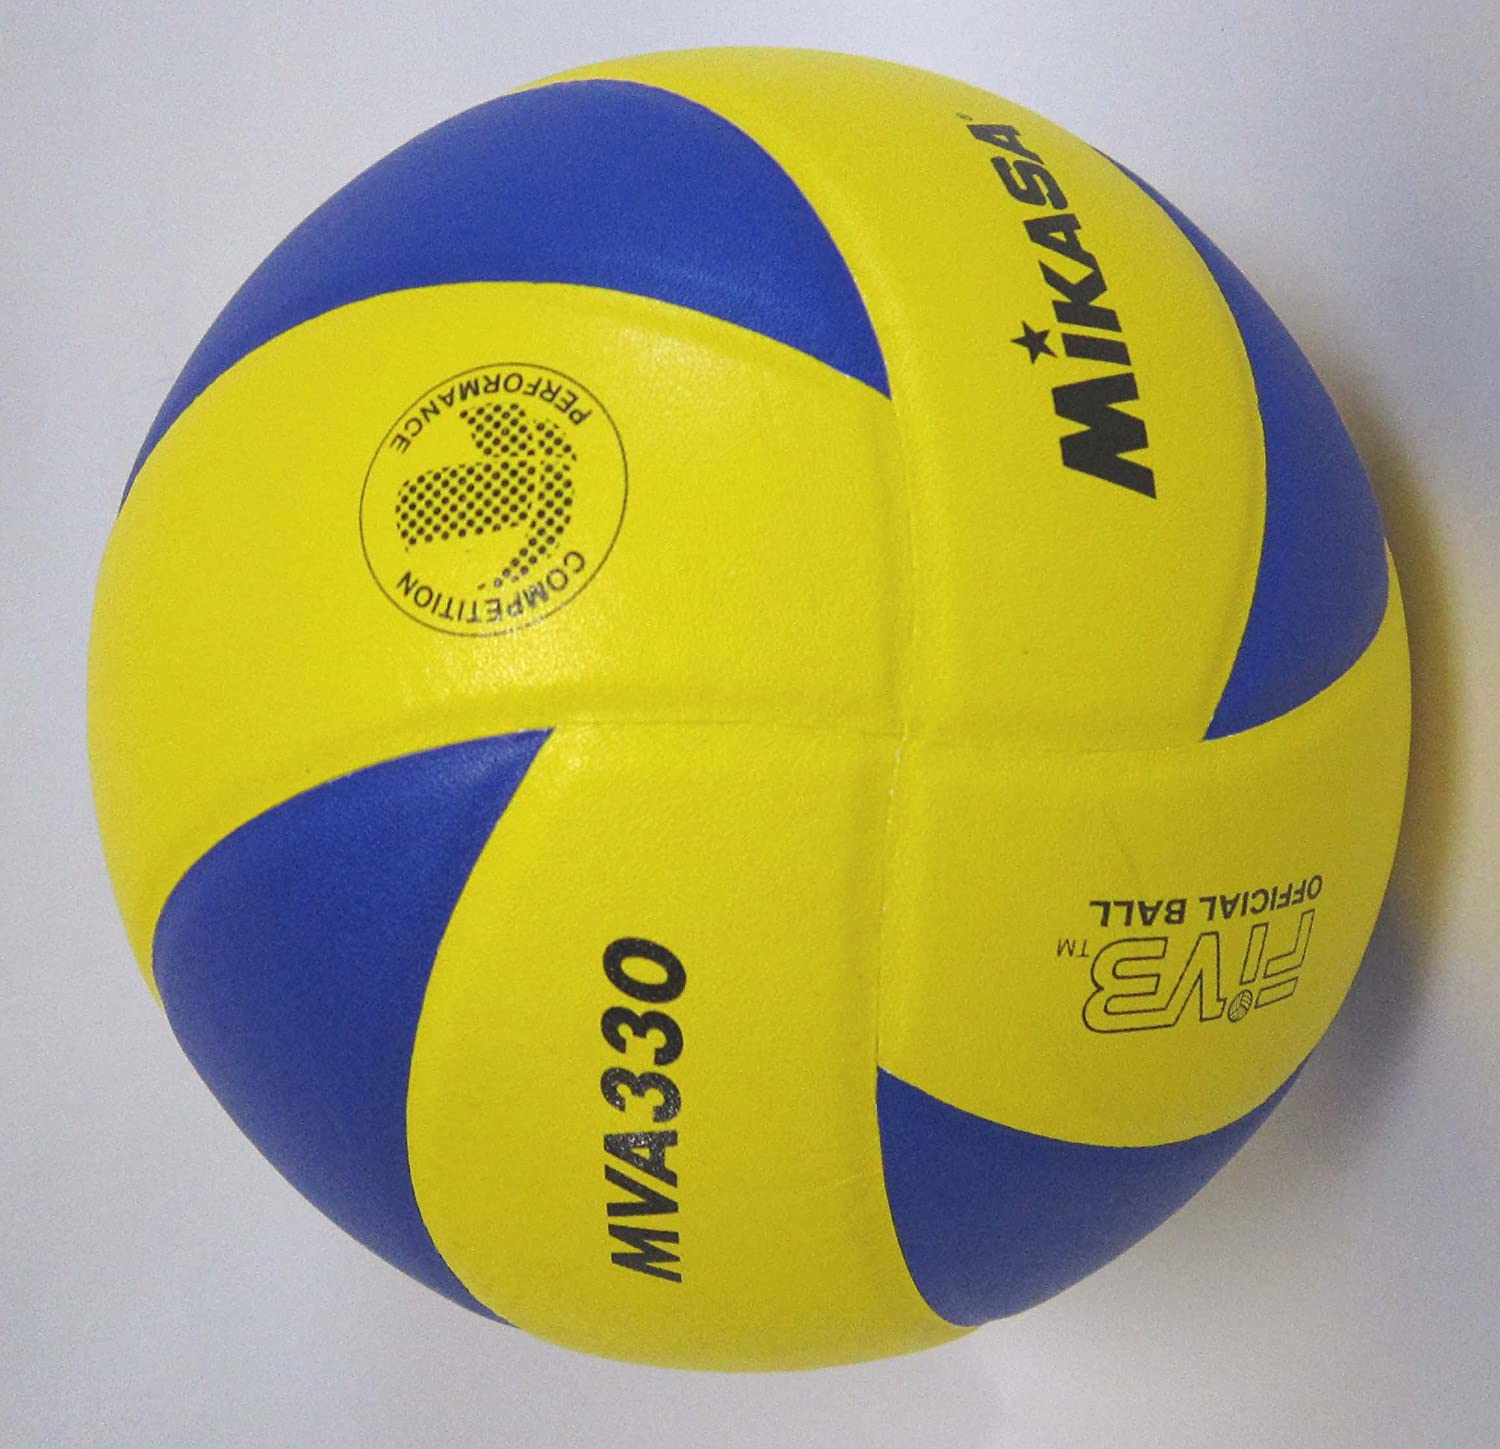 MIKASA 330 volleyball Olympic game training strand ball mva330 FIVB APPROVED